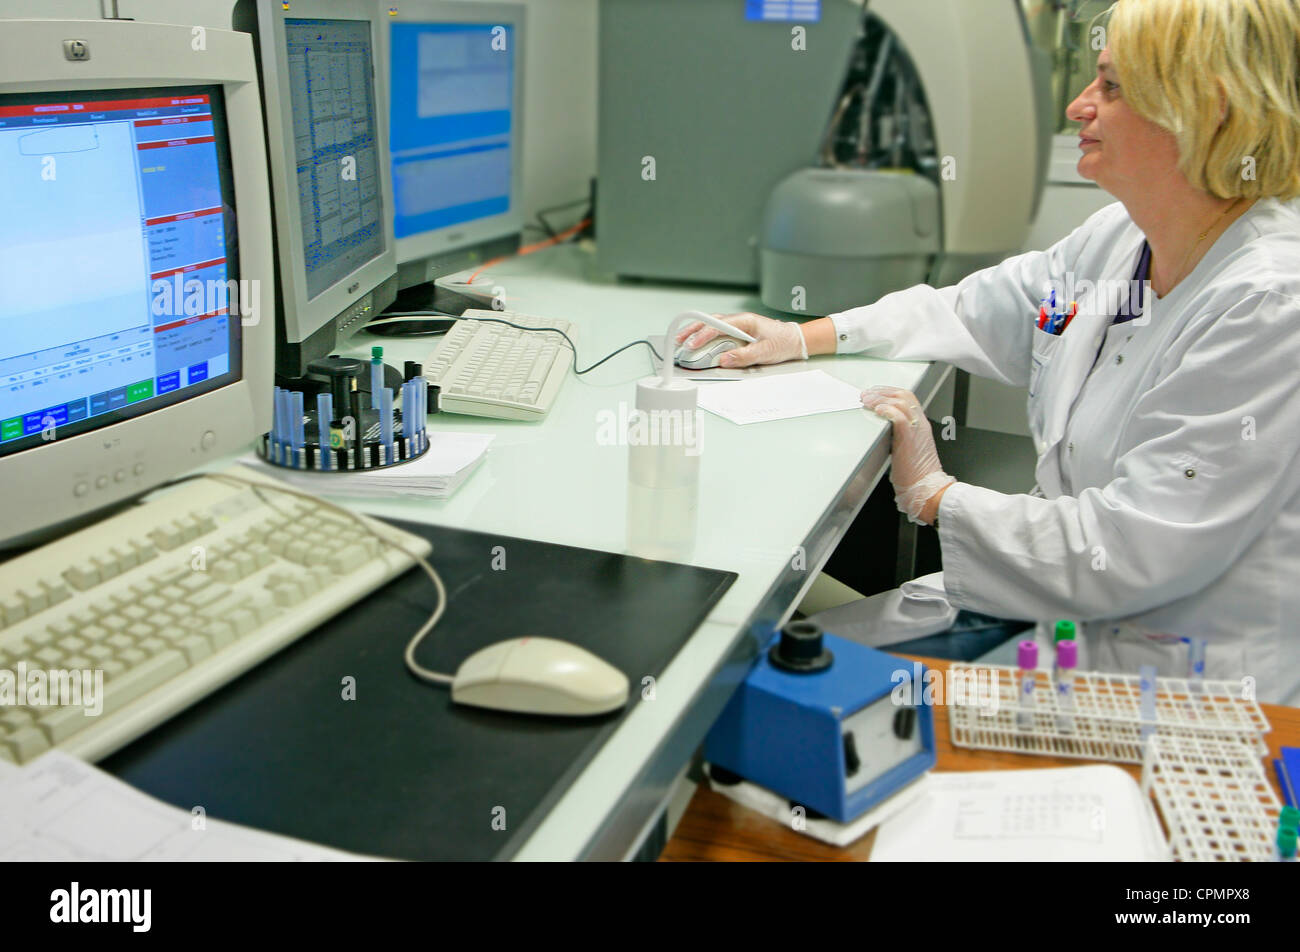 FLOW CYTOMETRY - Stock Image